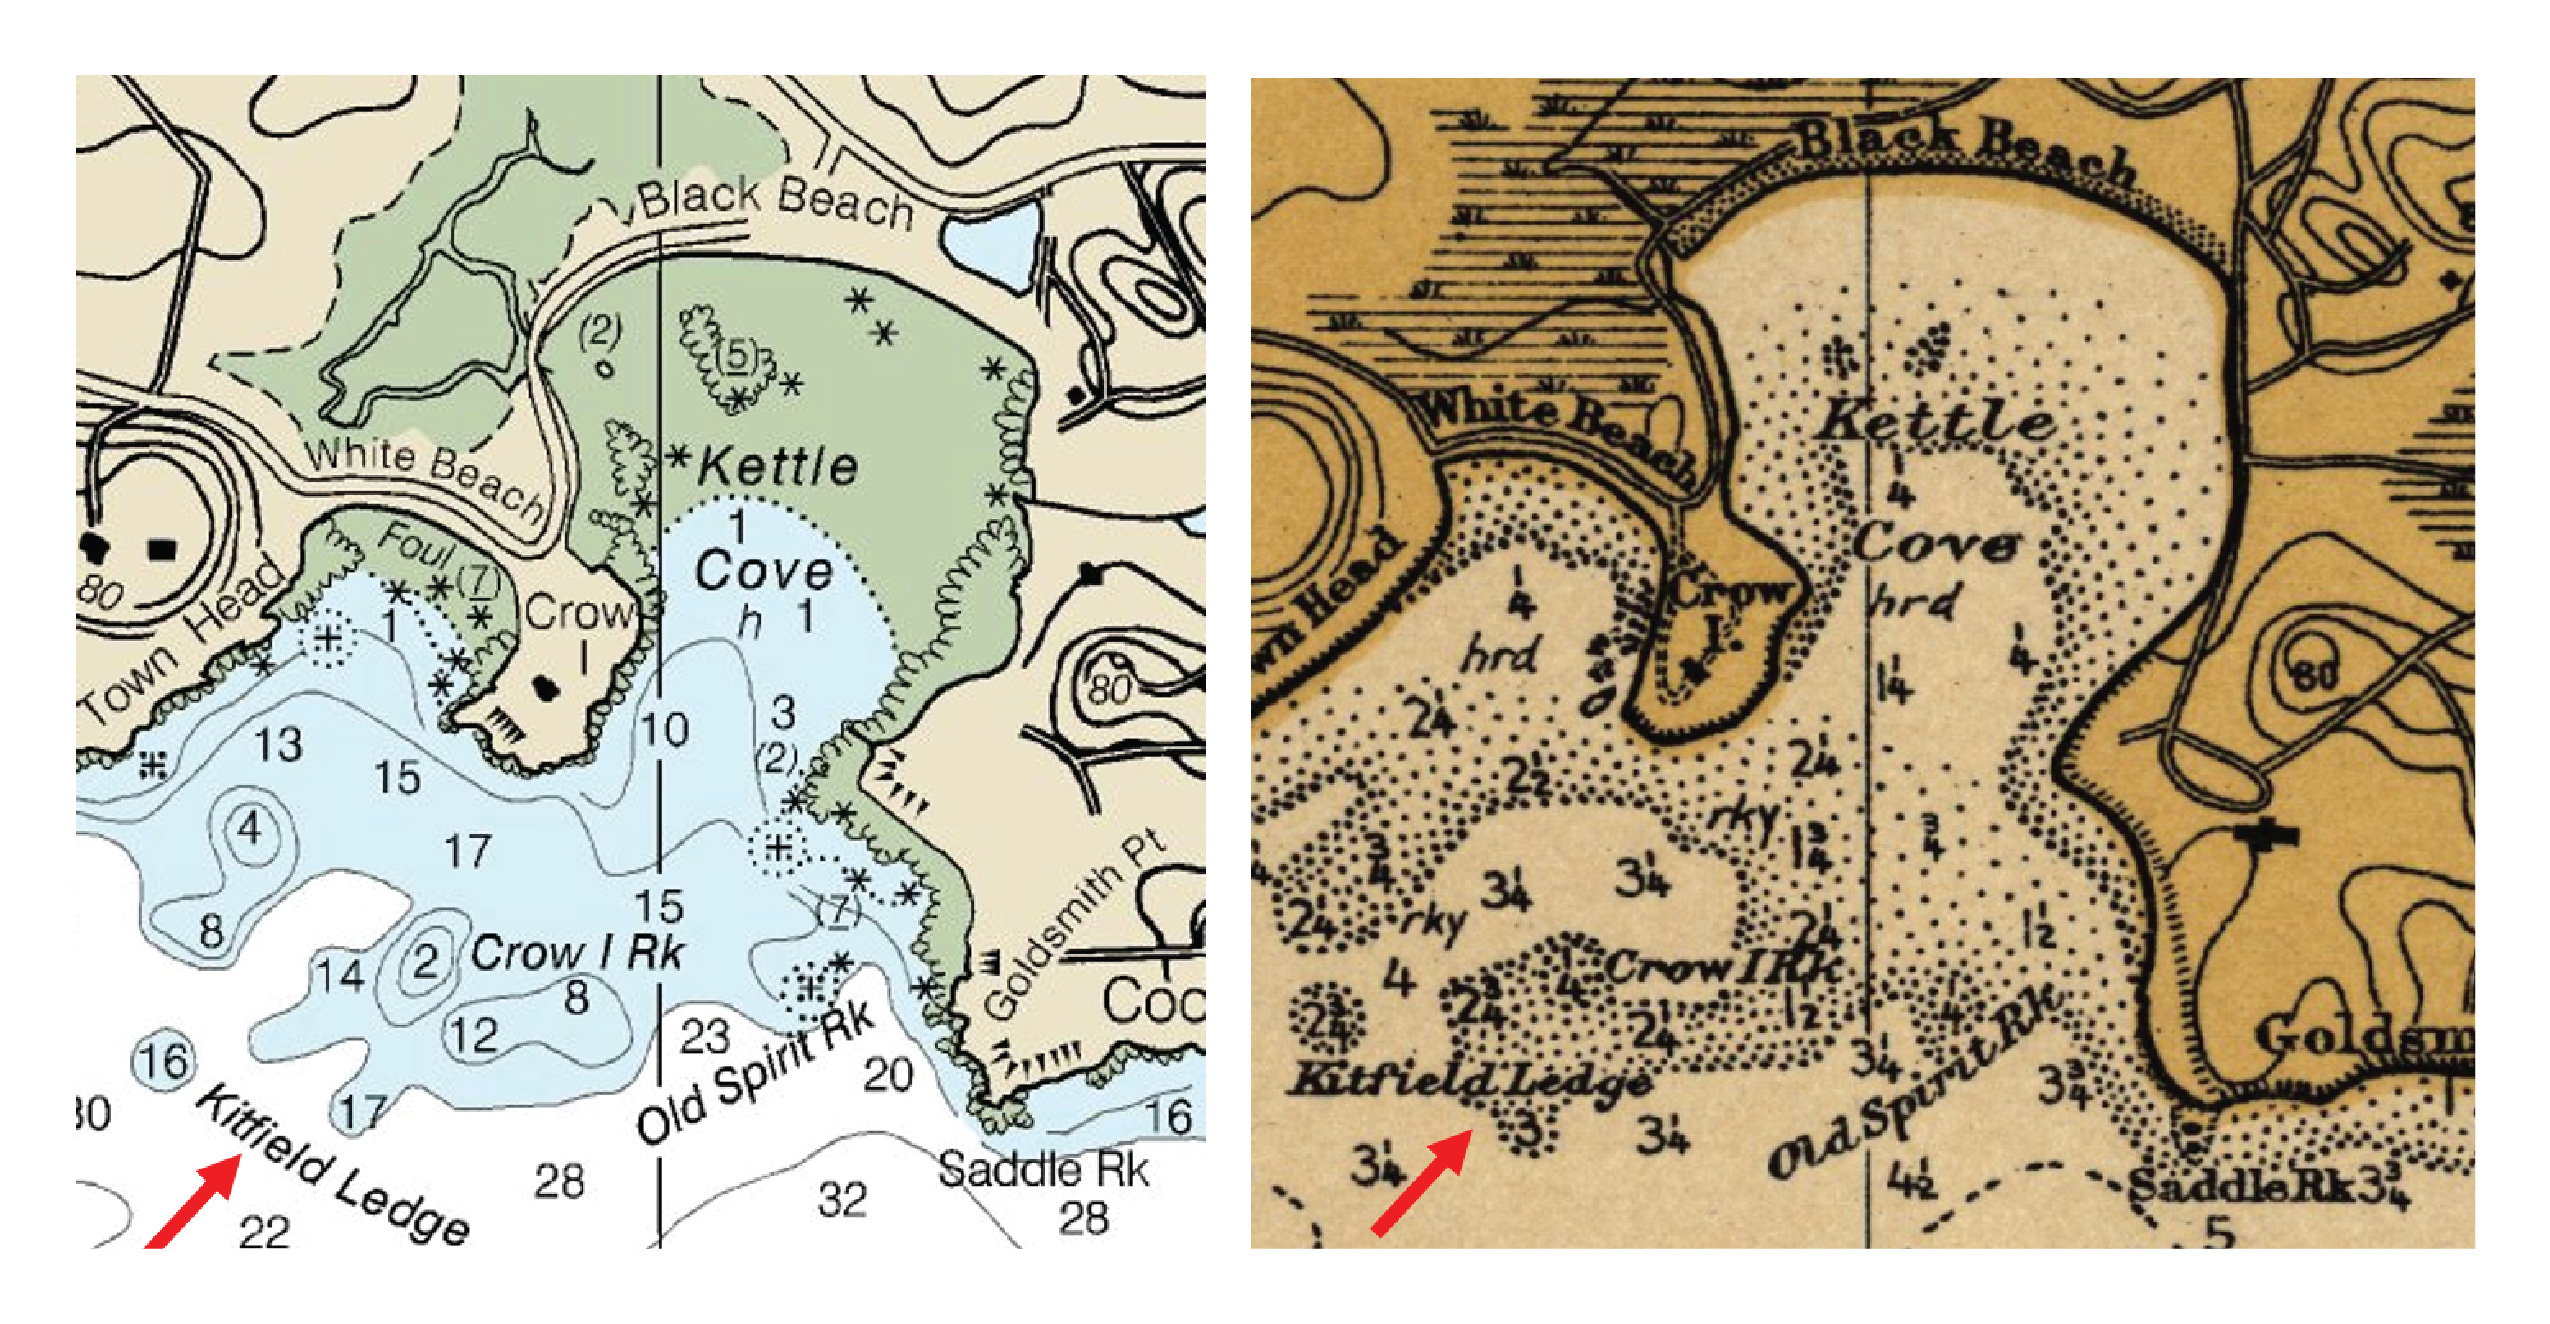 Left: Current edition of NOAA chart 13279. Right: 1912 edition of chart 243.